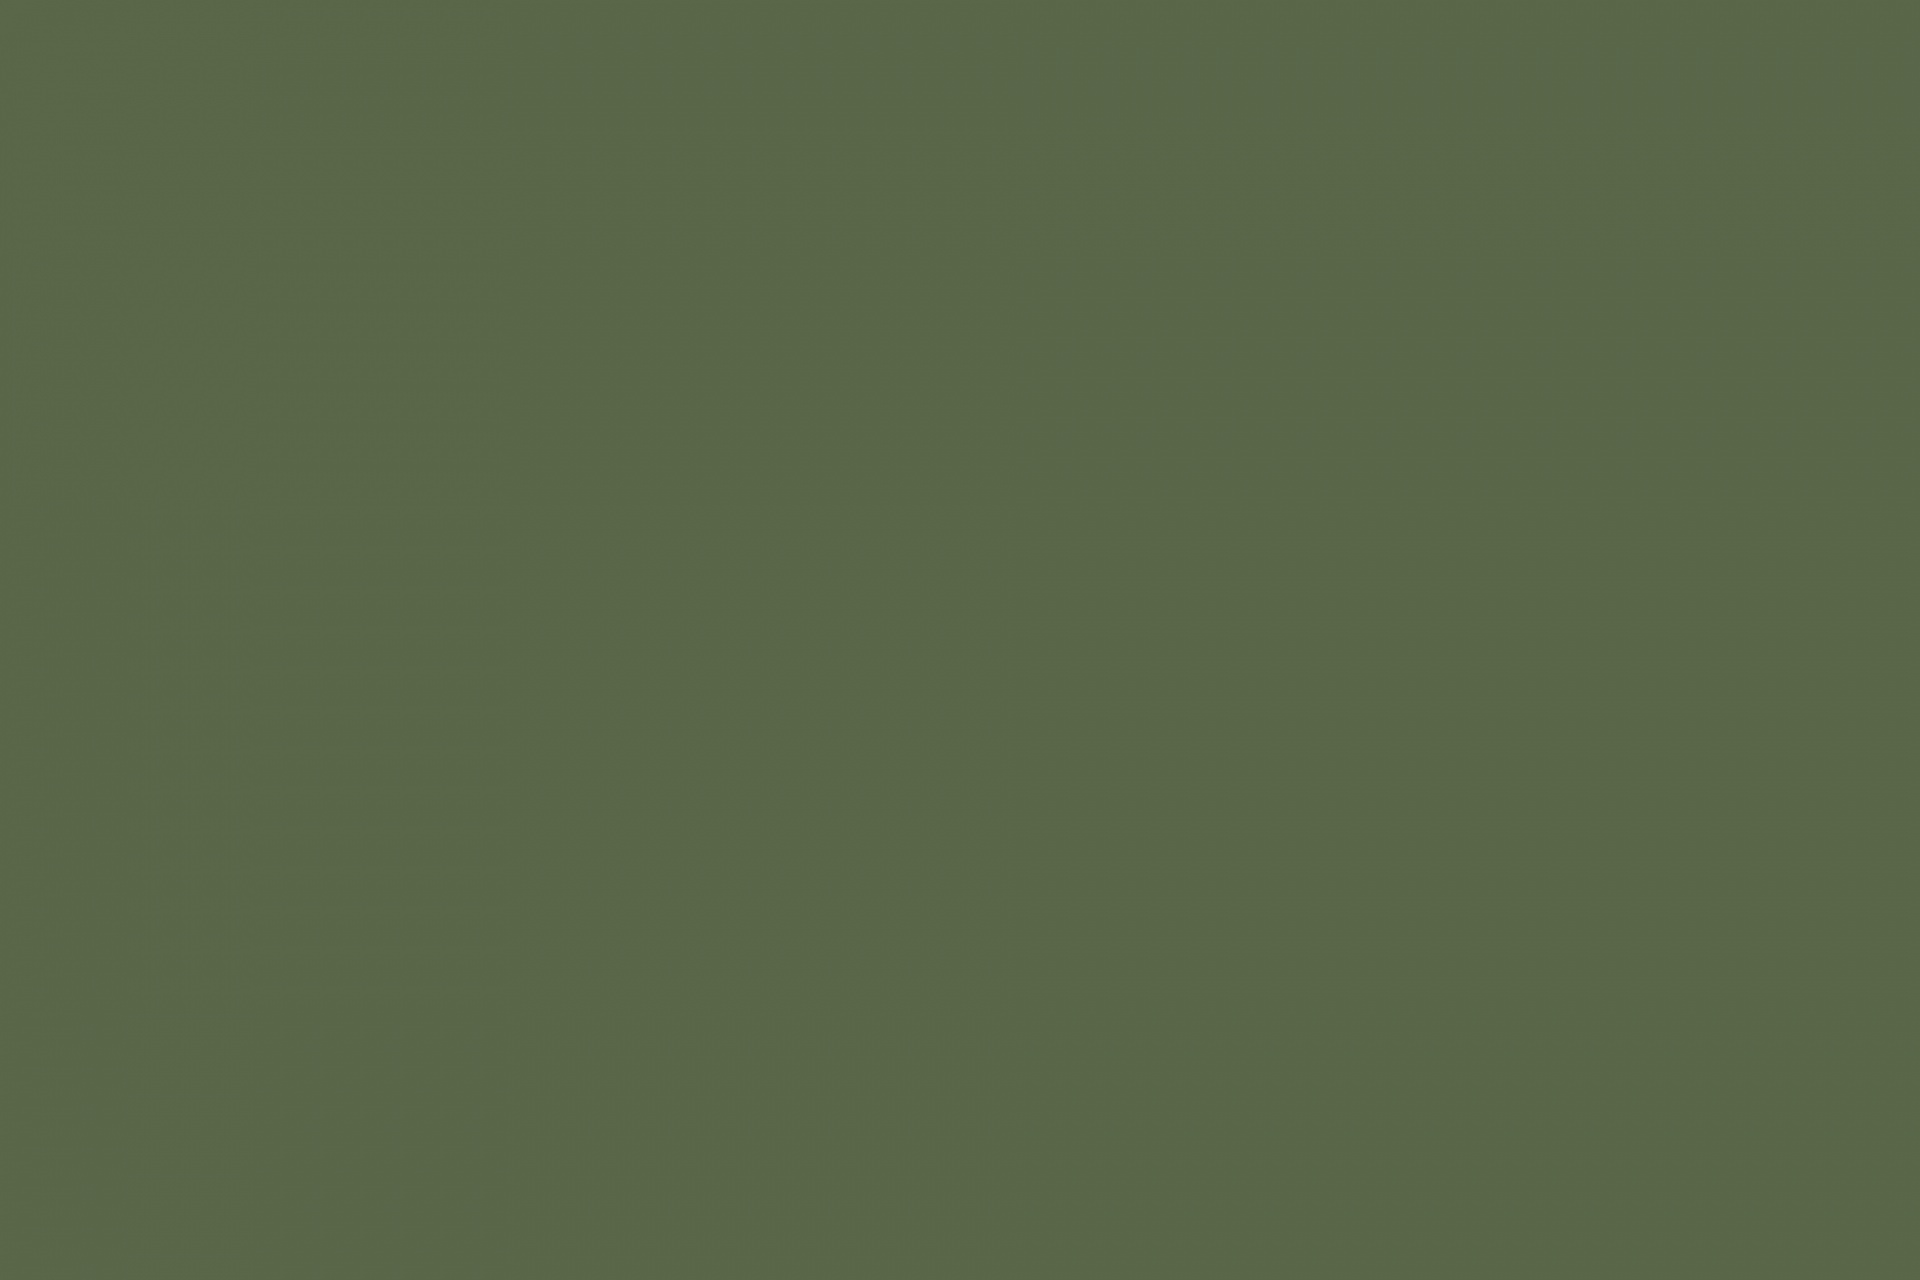 Olive Green Background Free Stock Photo  Public Domain